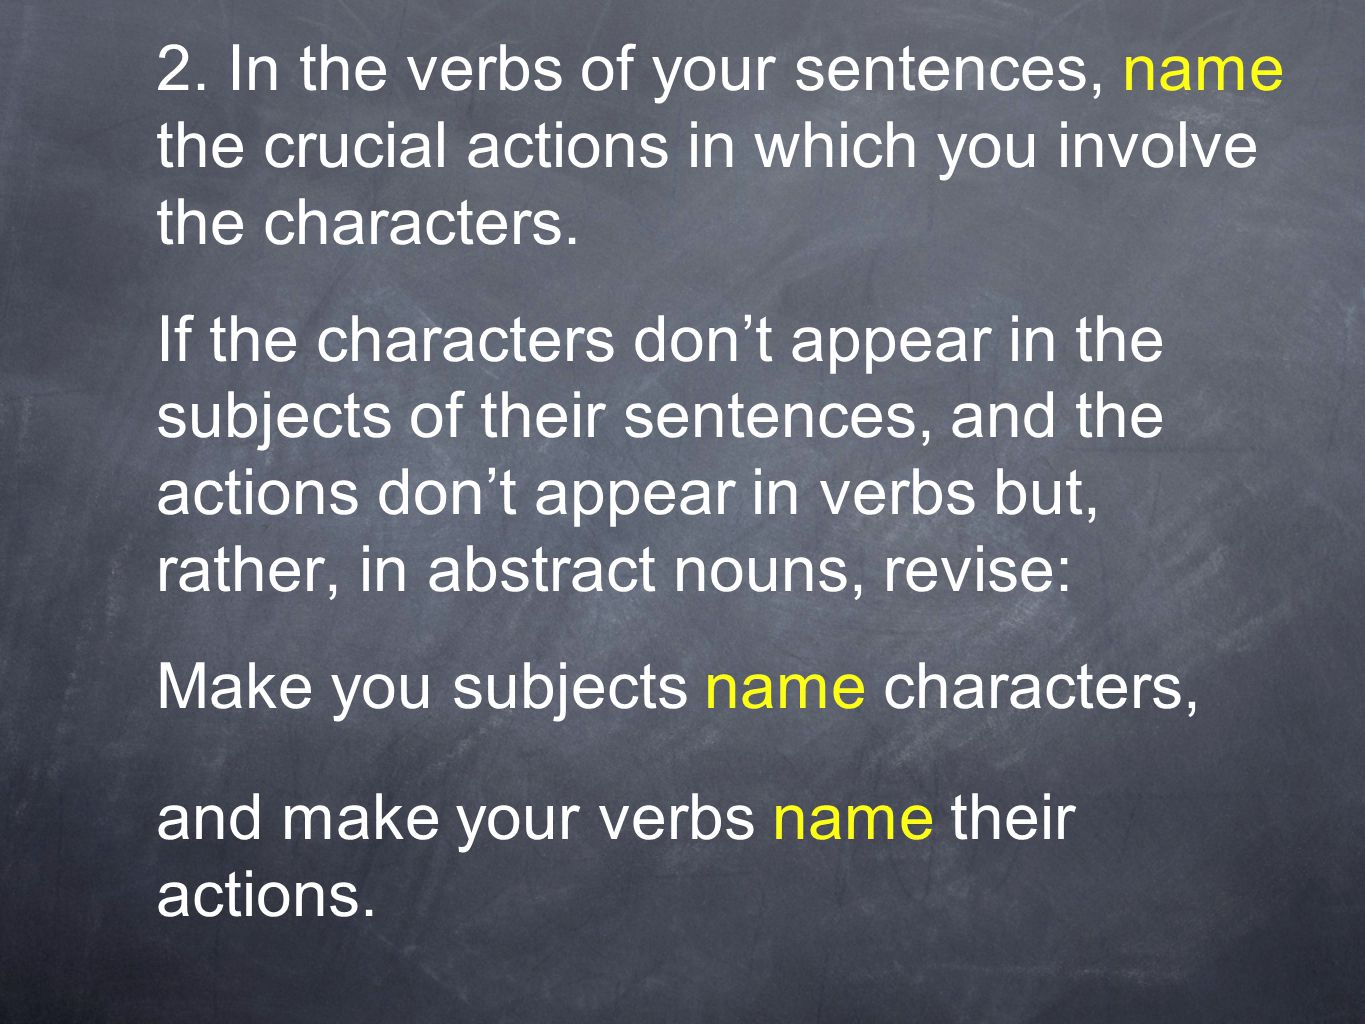 2. In the verbs of your sentences, name the crucial actions in which you involve the characters.